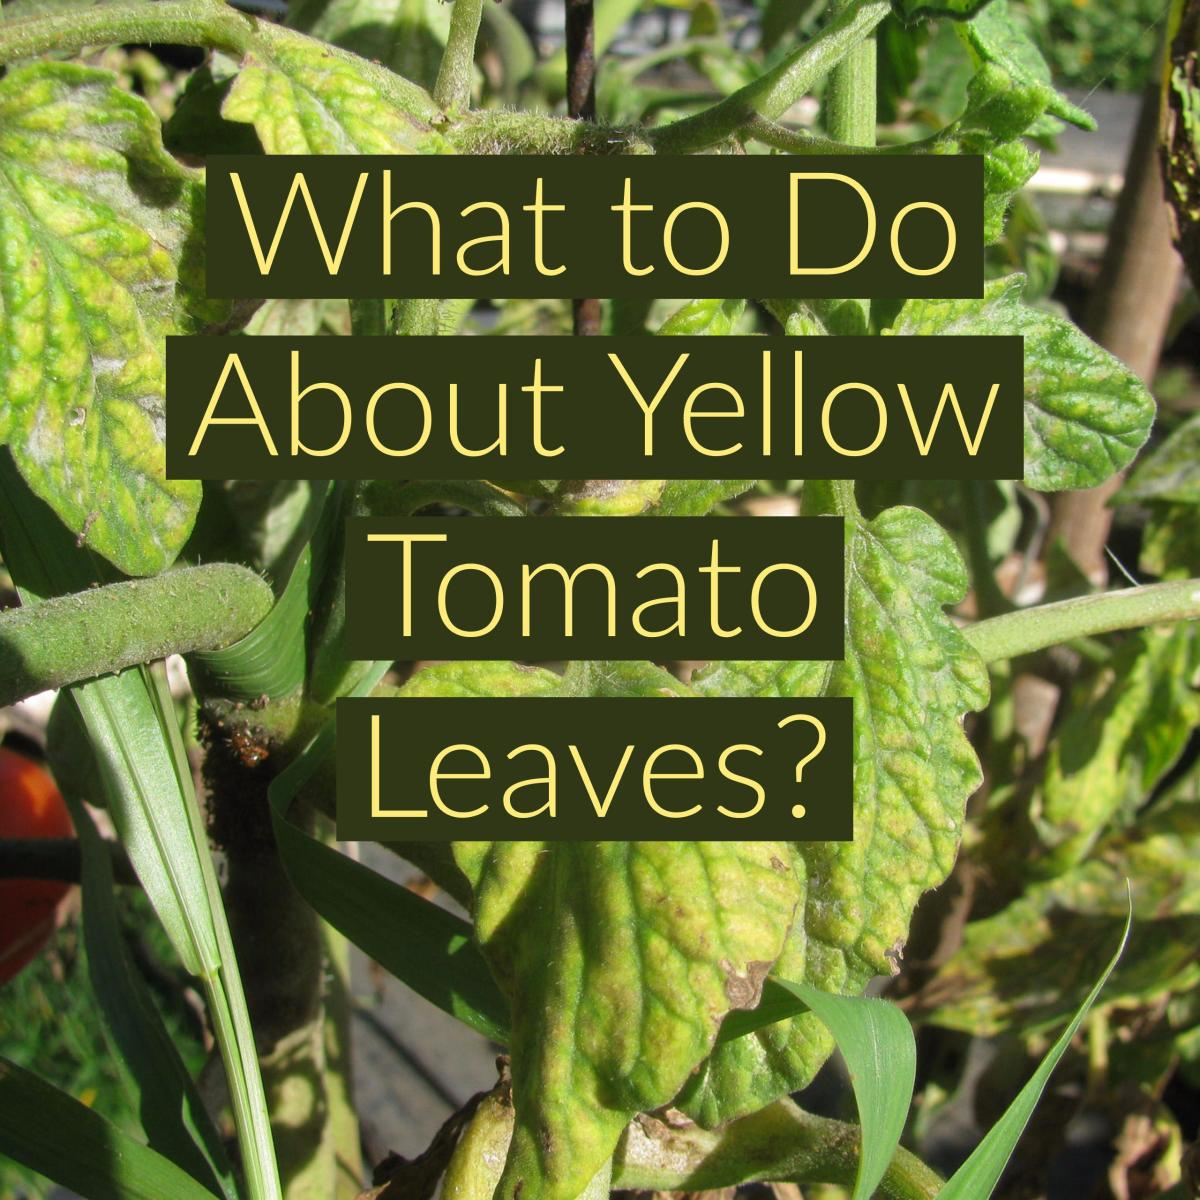 Yellow leaves on tomato plants